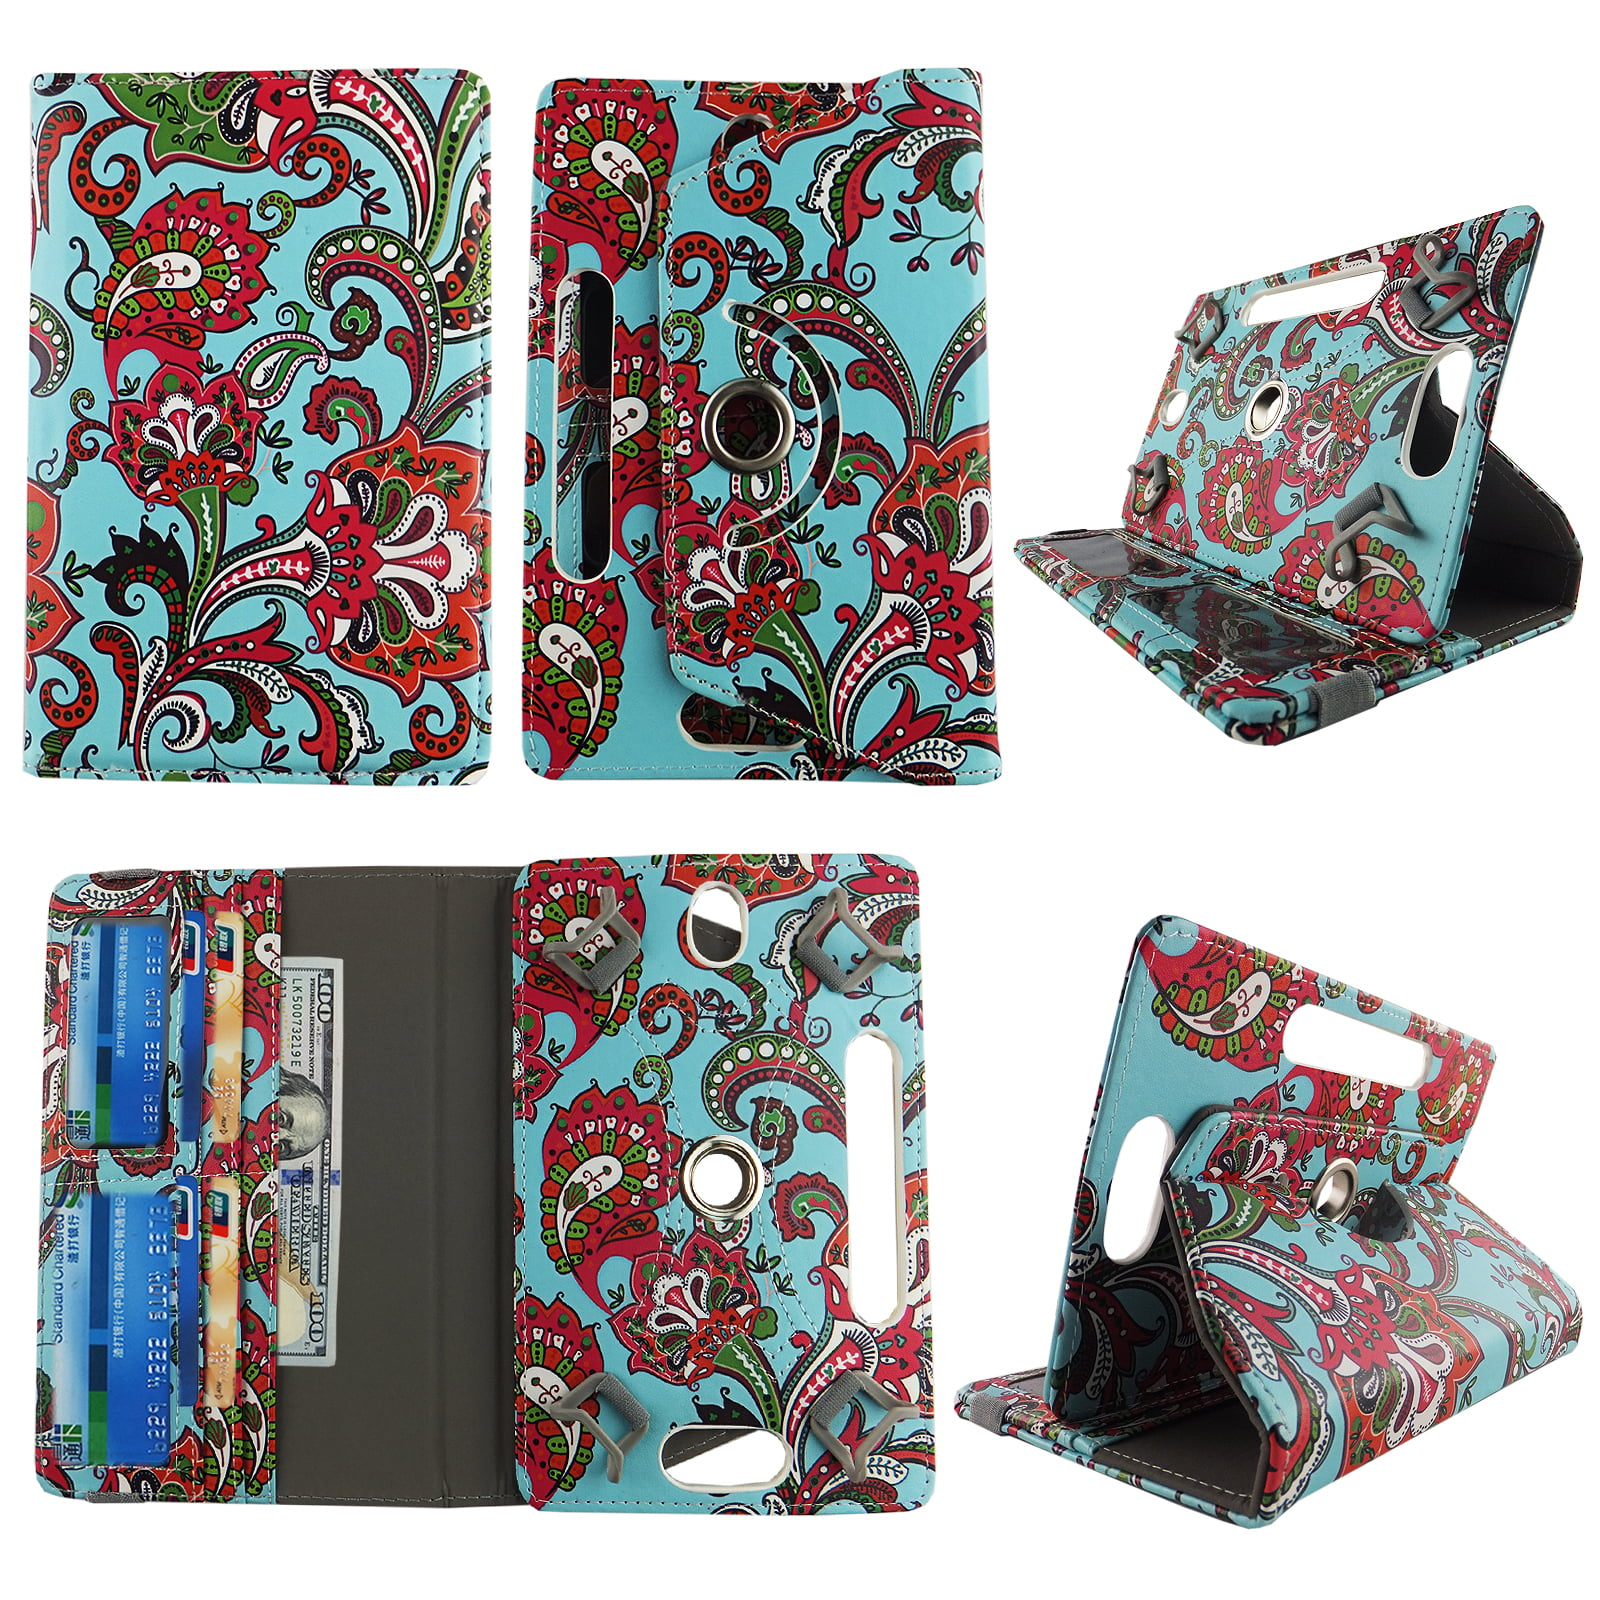 Universal Luxury Cute Christmas Elegant Patterned Wallet Case Cover Folio Wallet fits 10-11 inch Tablet Devices